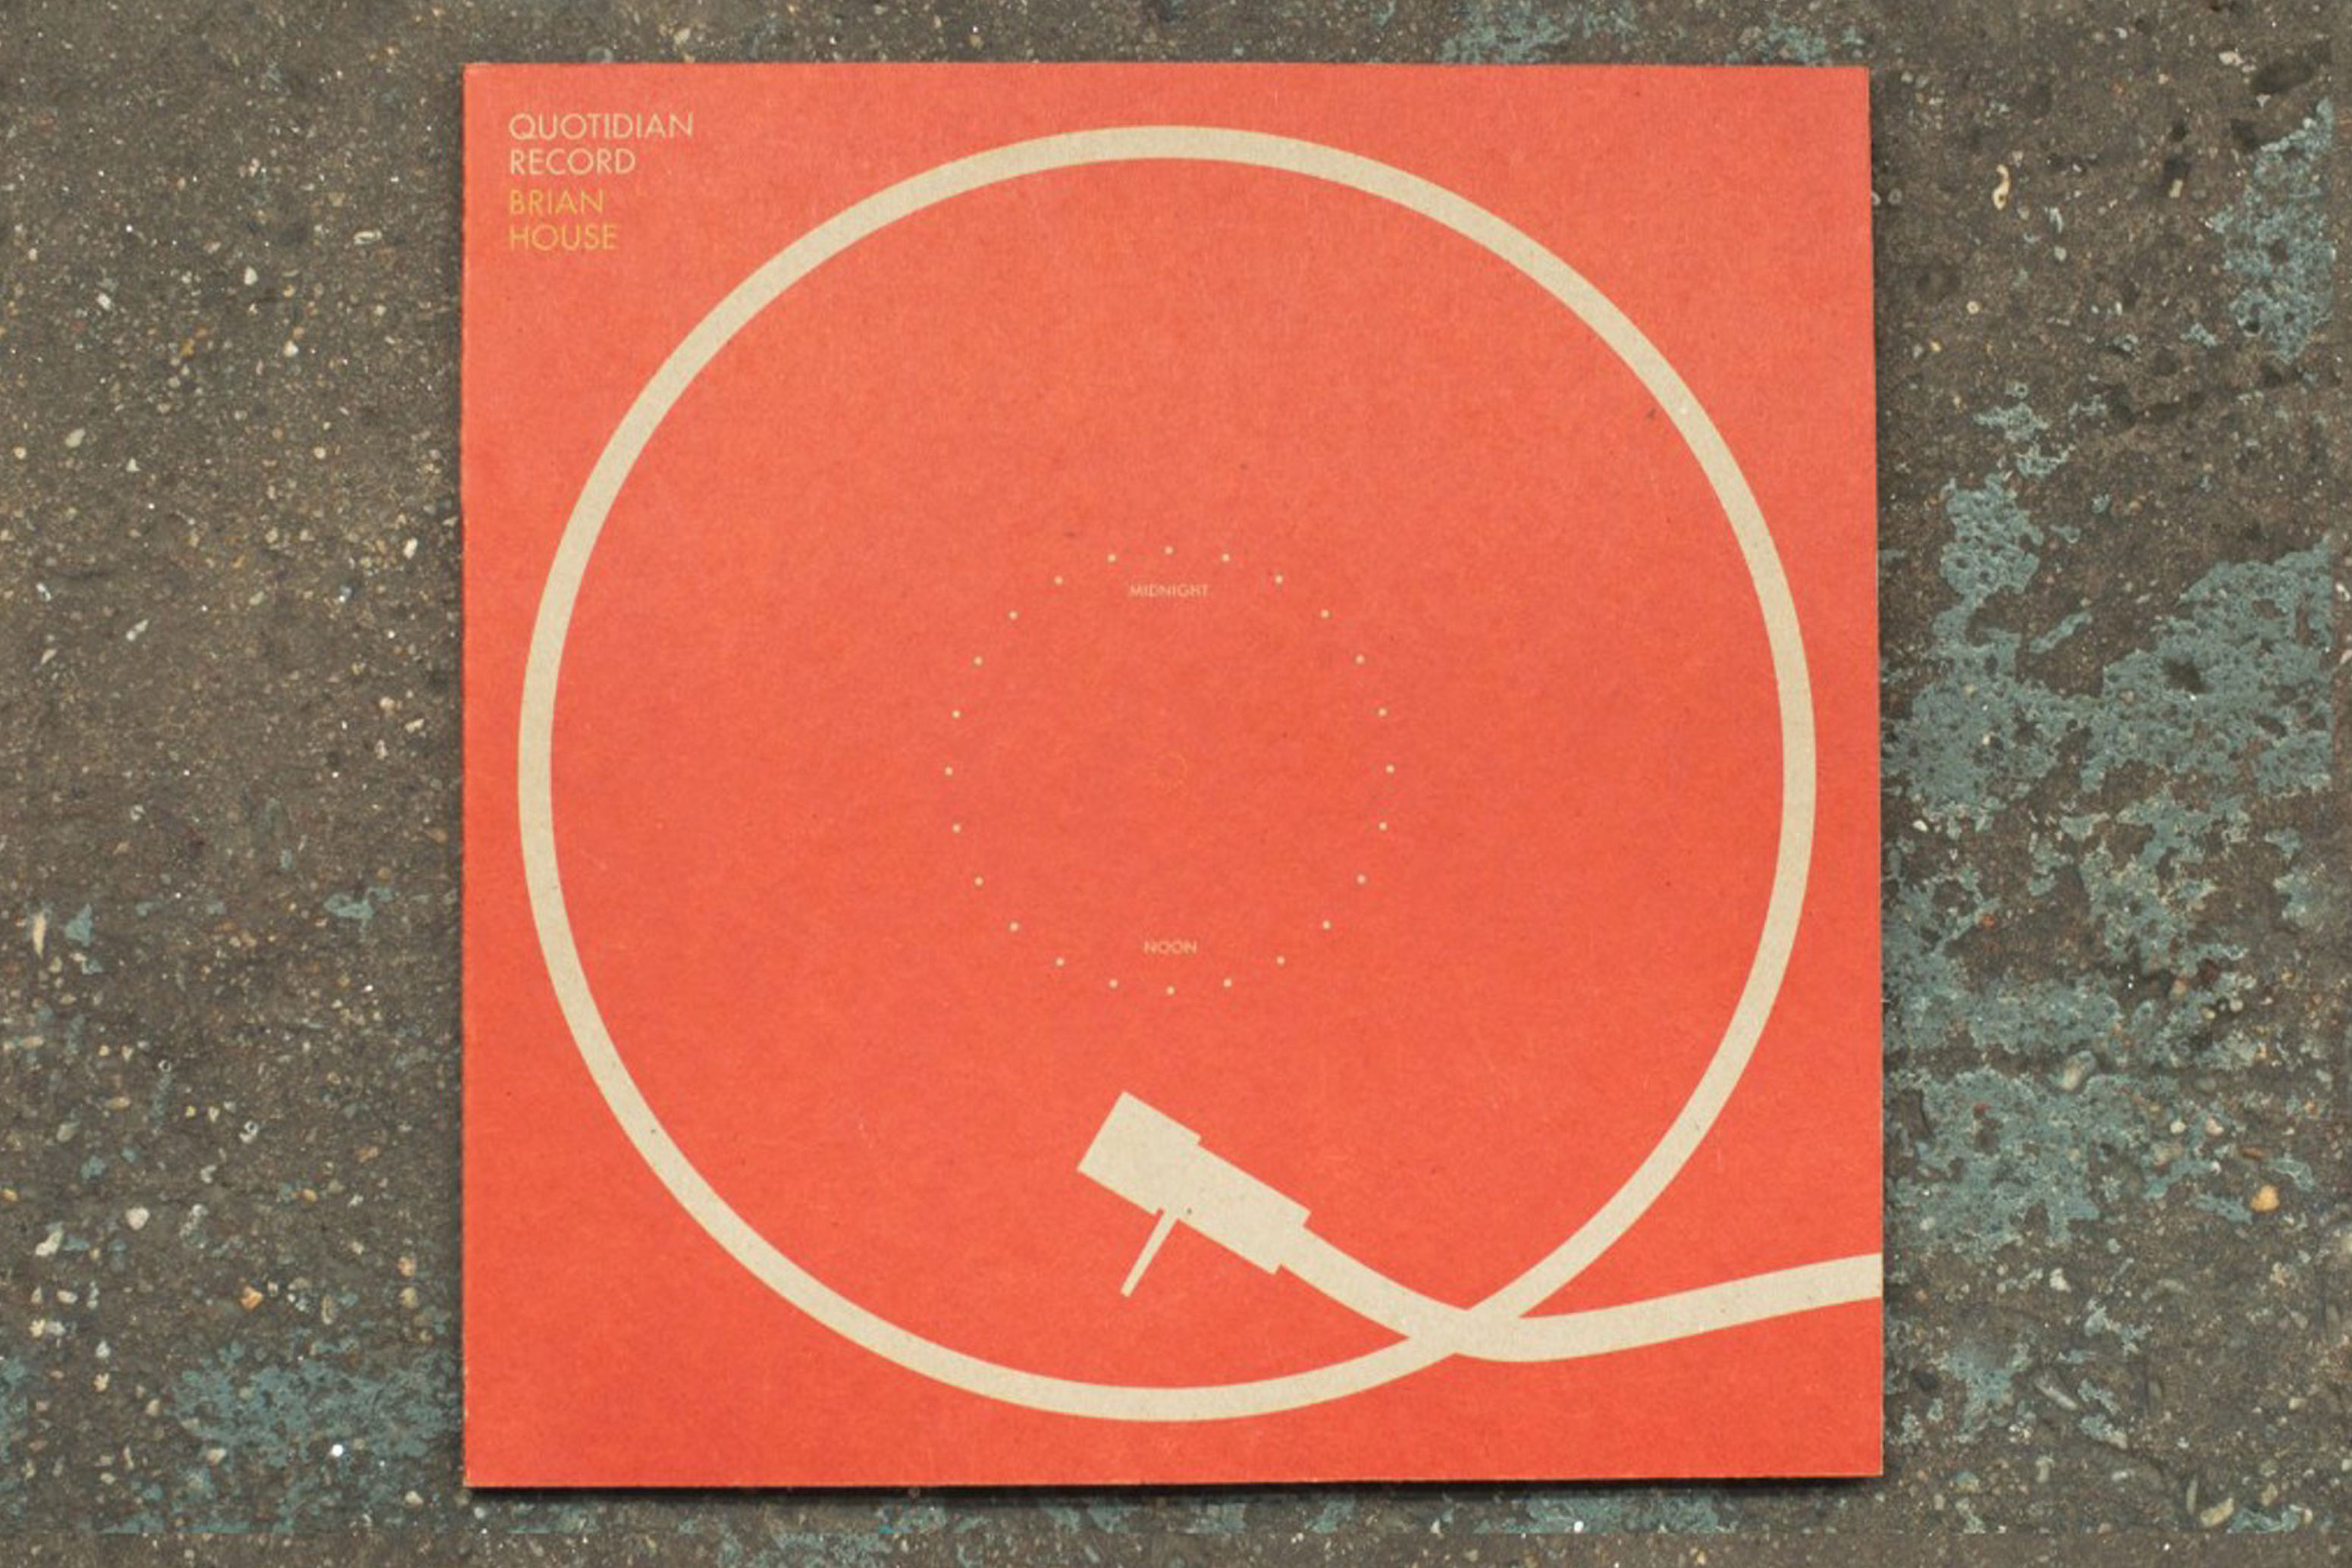 Quotidian Record limited edition LP